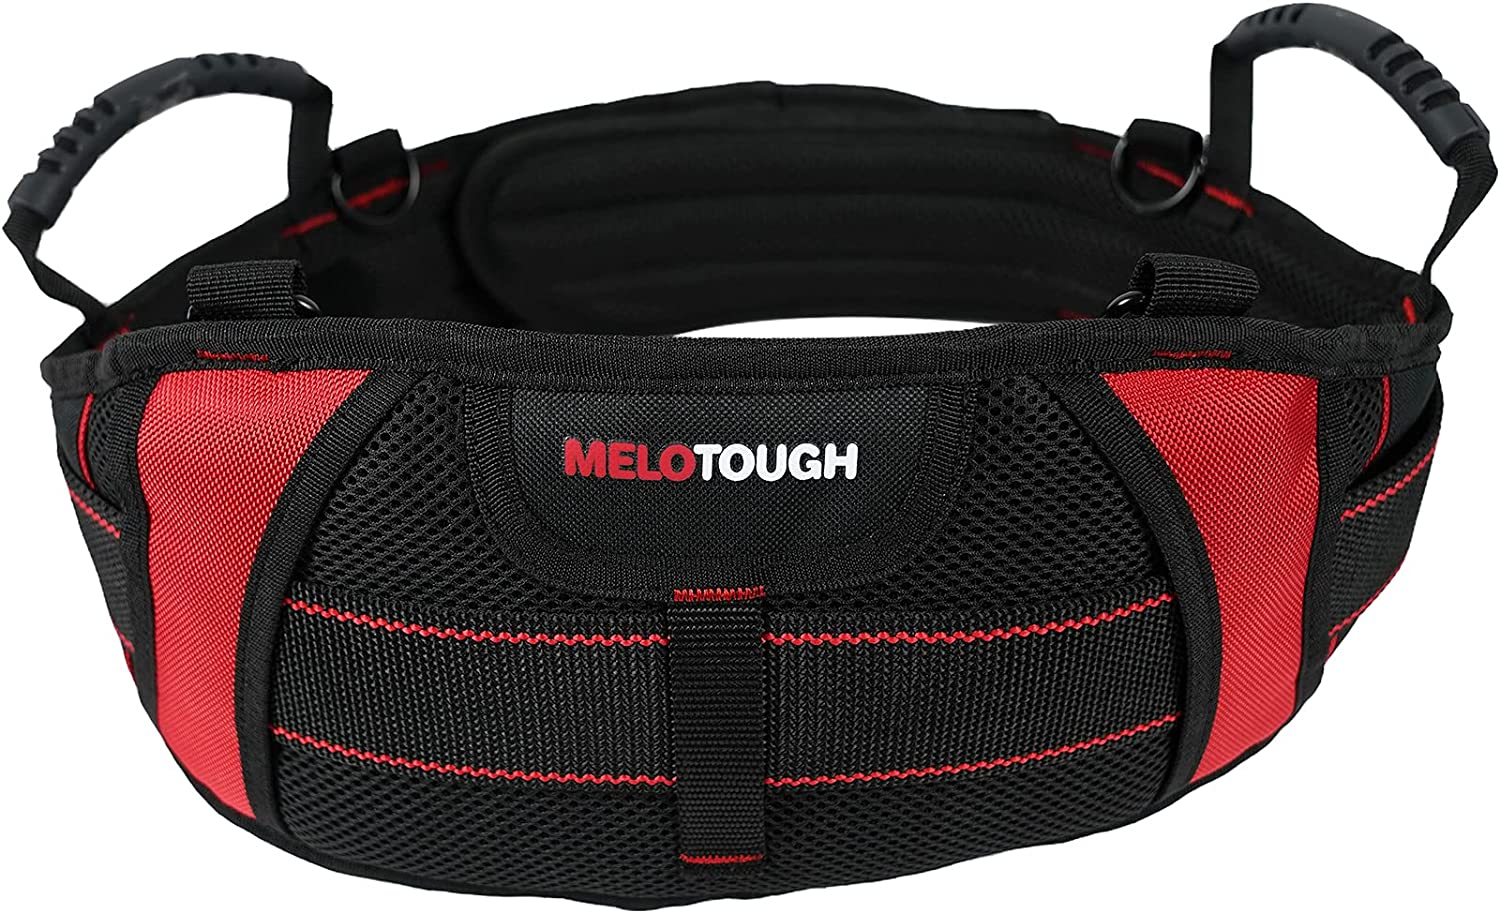 MELOTOUGH Heavy Duty Finally popular brand Work Tool price Belt Foam with Comfortable Extra